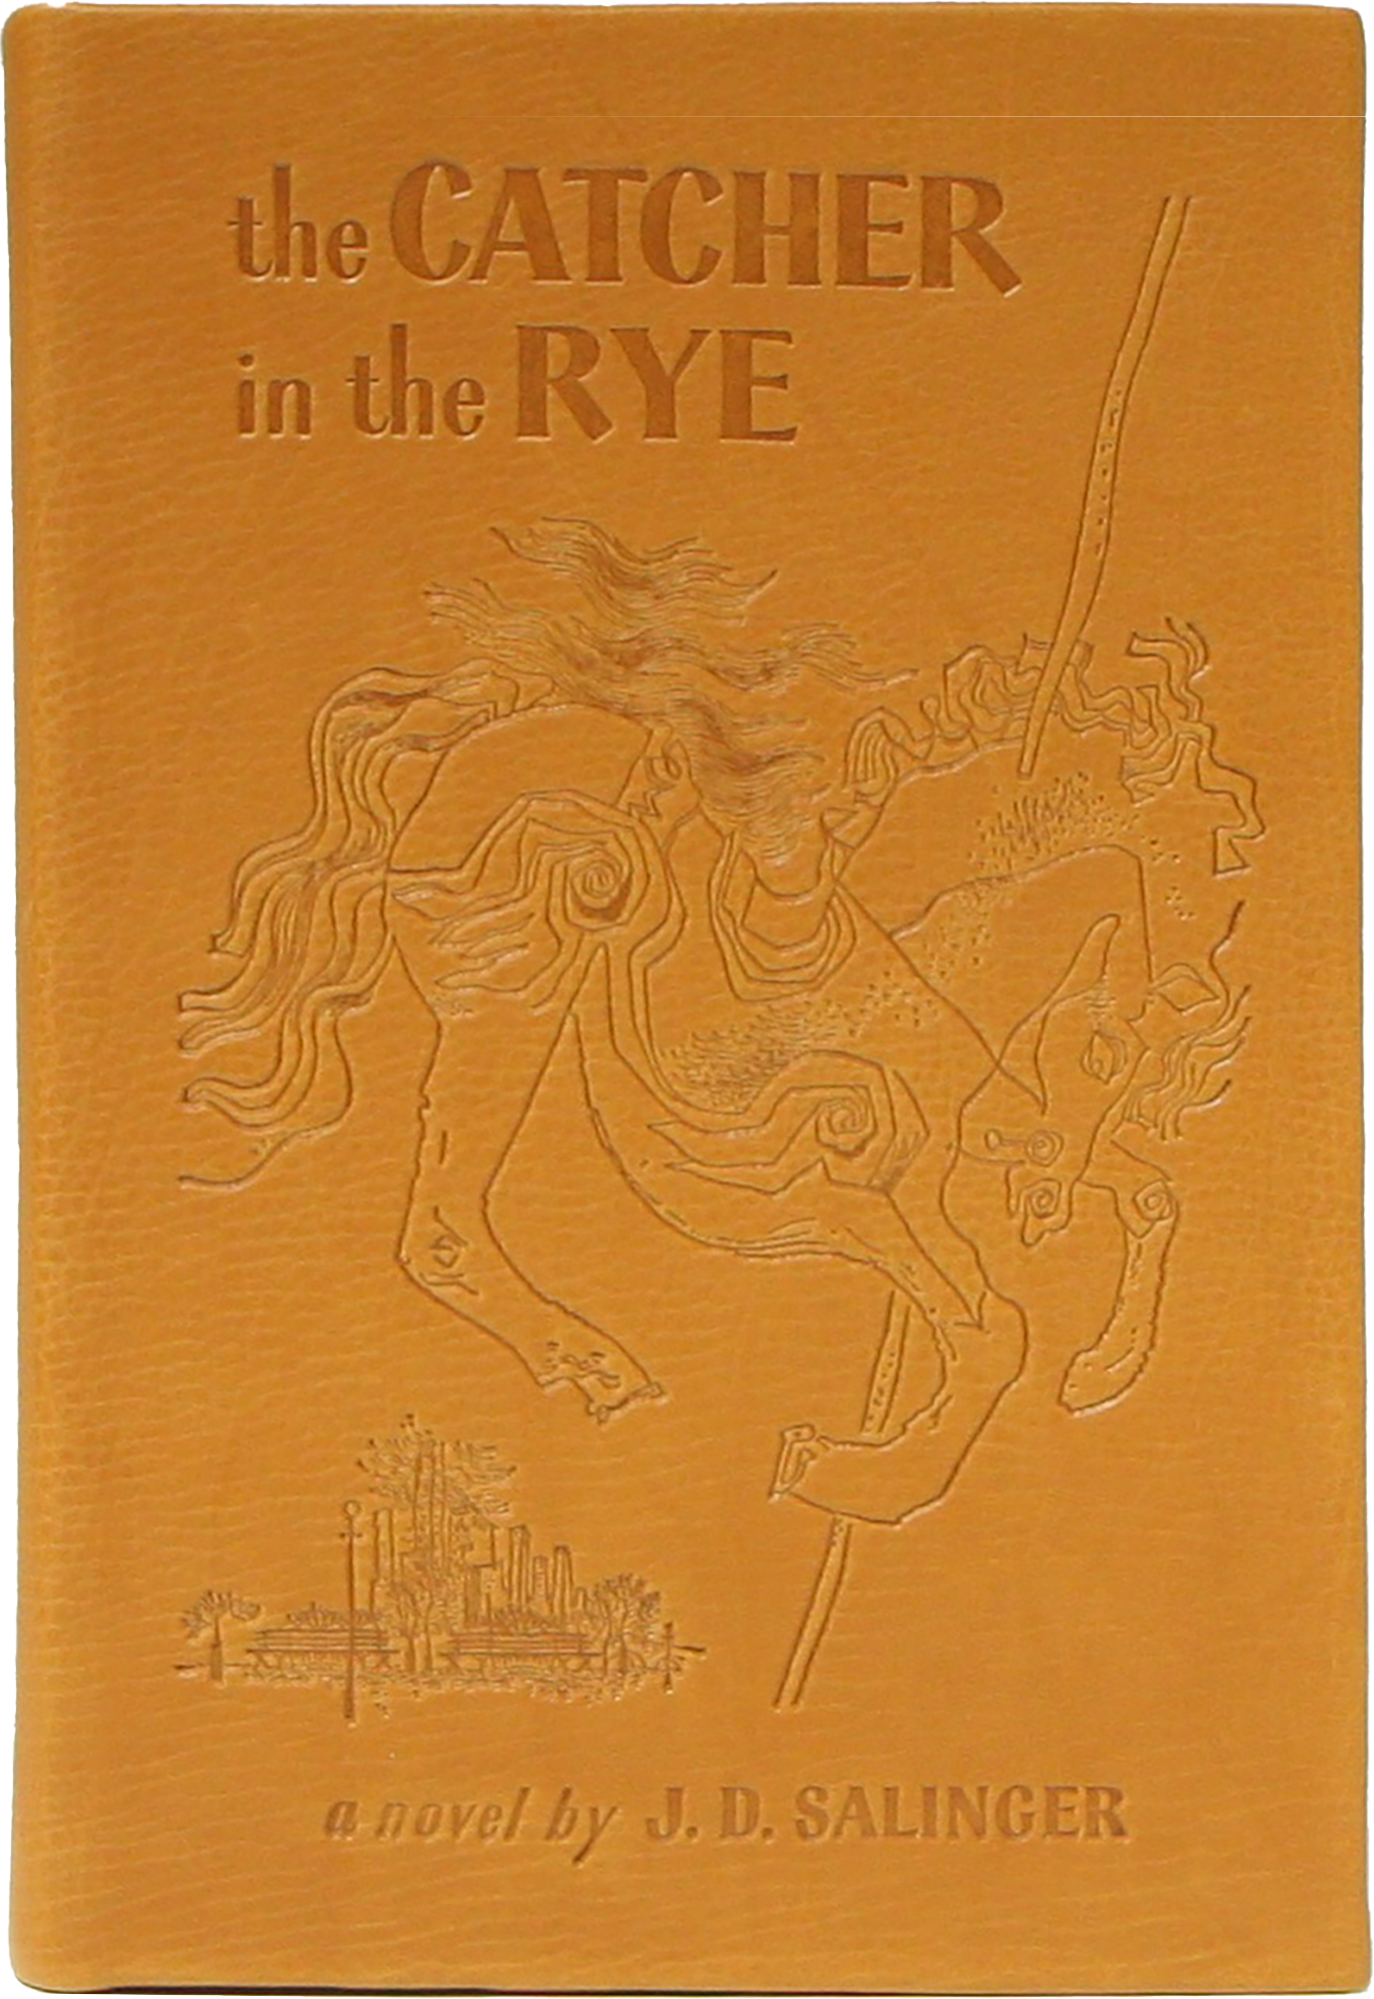 4. The Catcher in the Rye